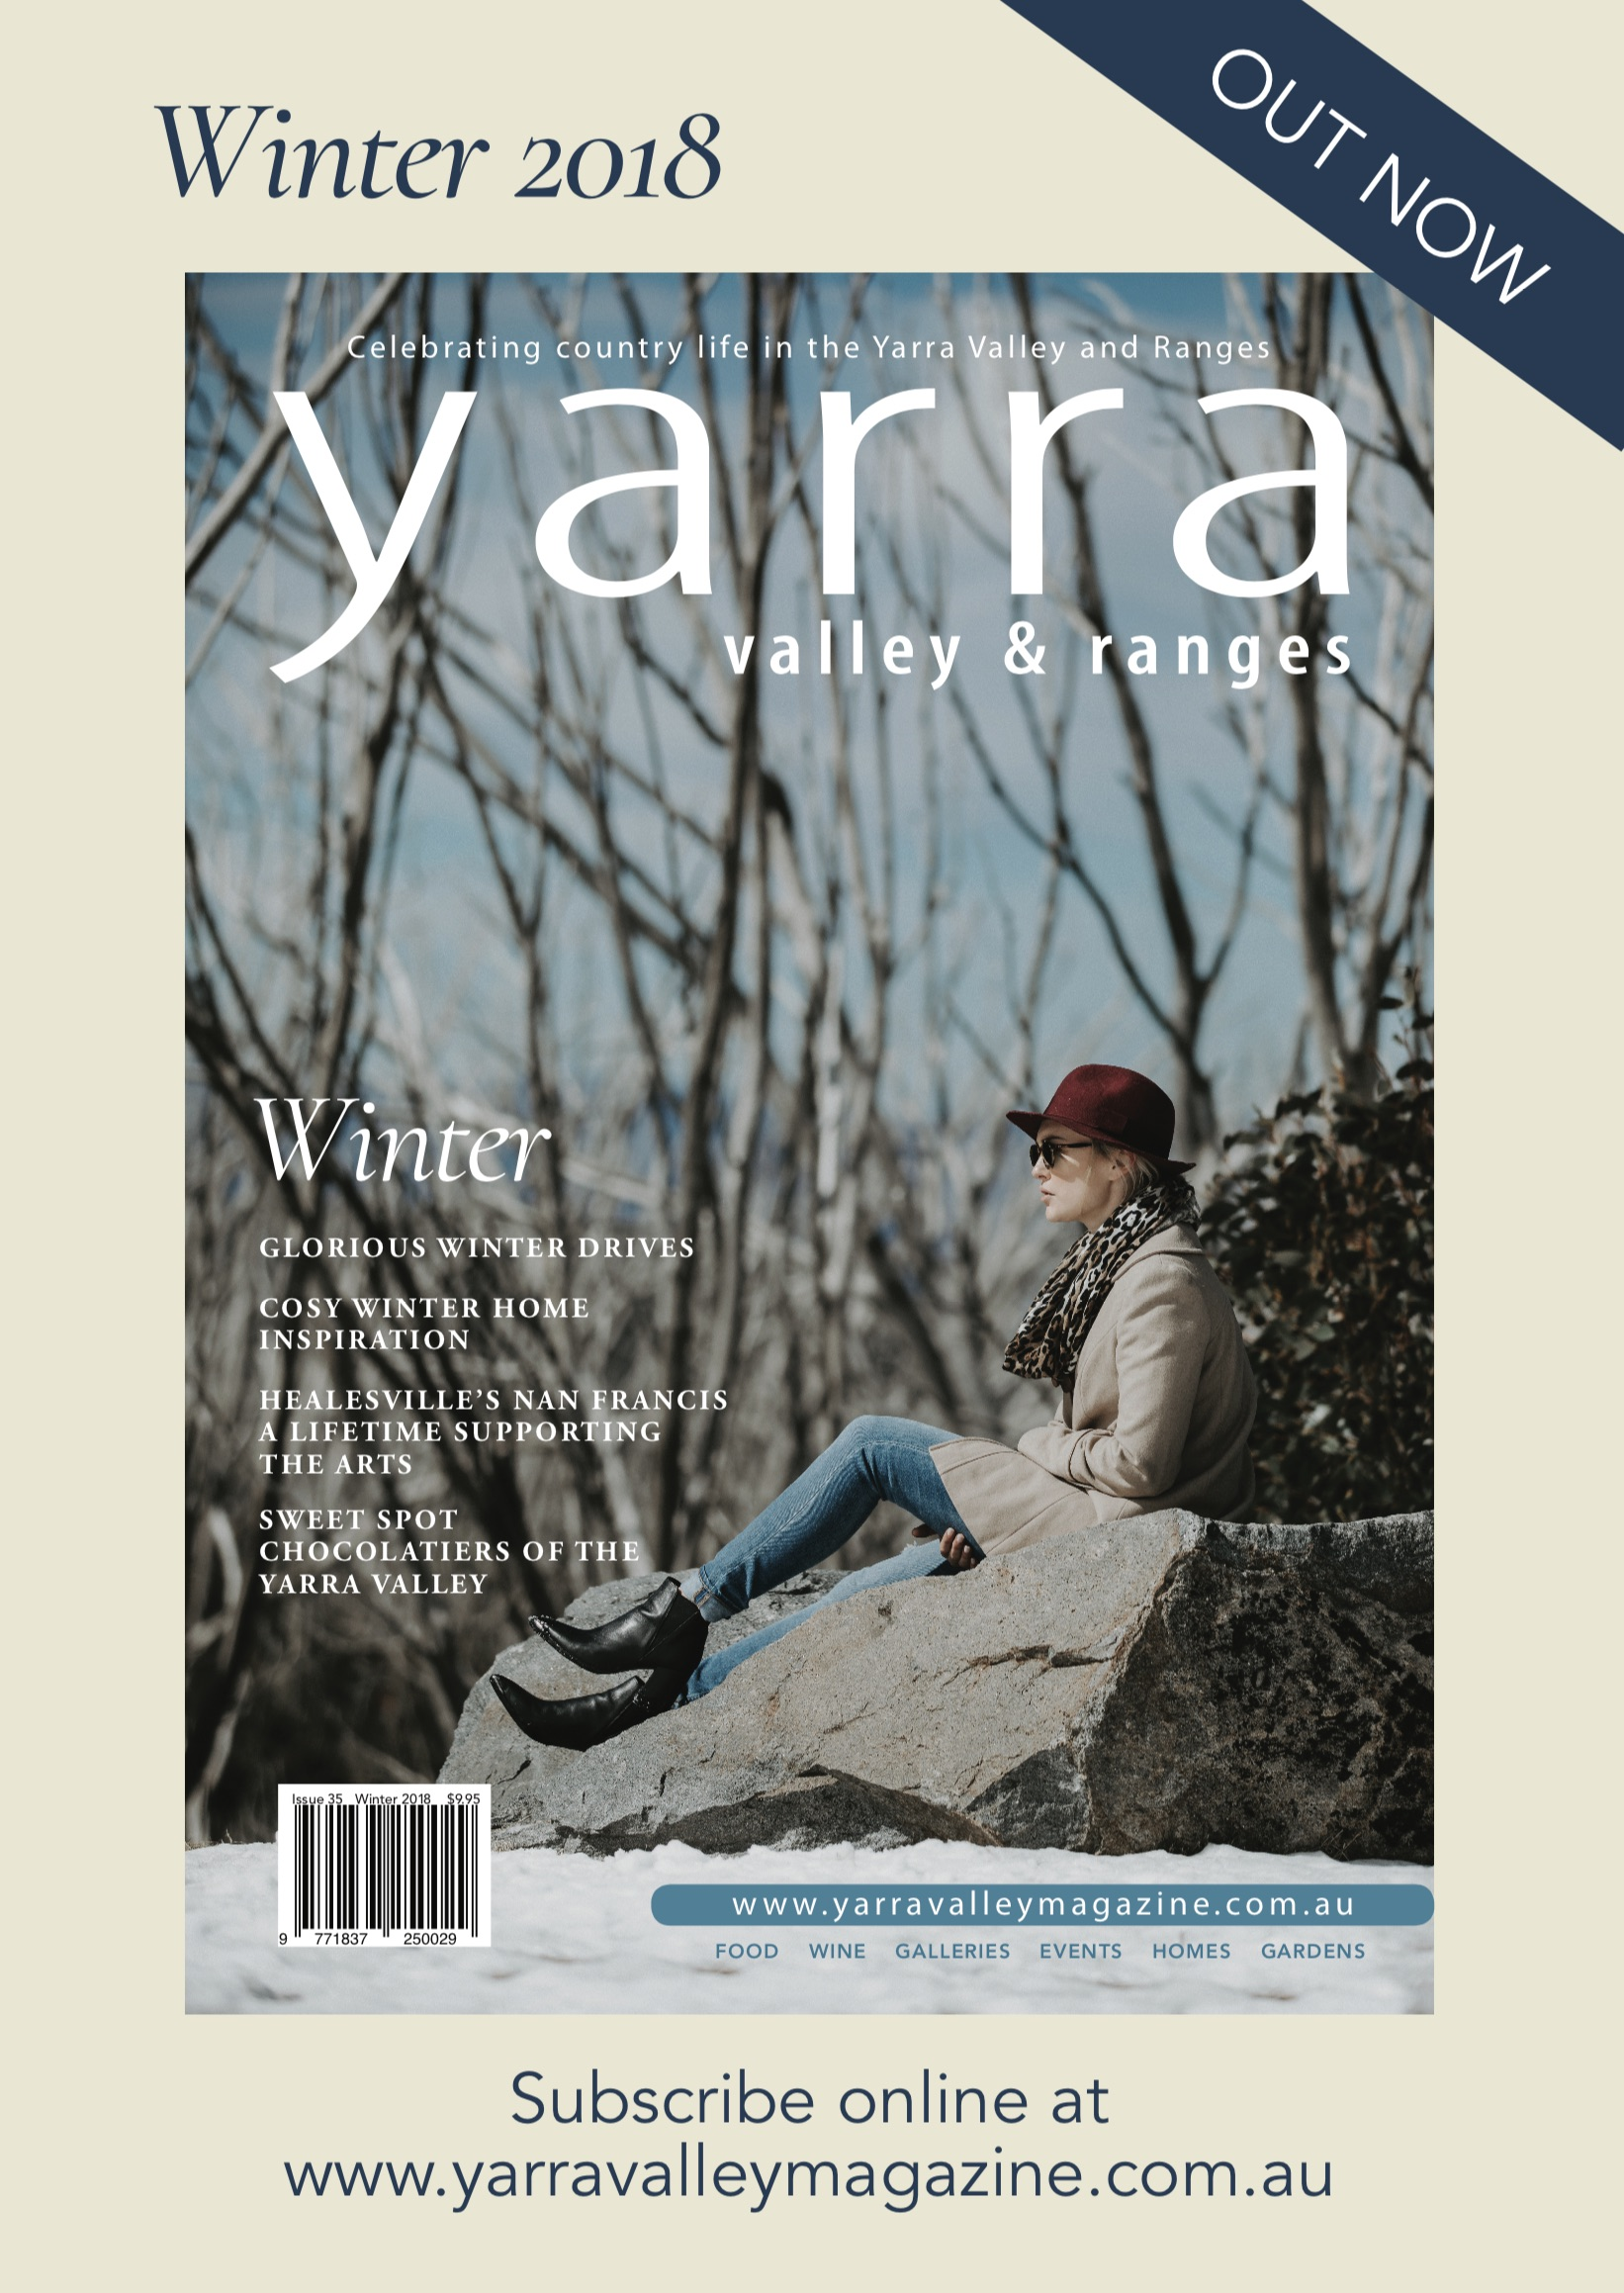 Pip Young, Author at Yarra Valley Magazine